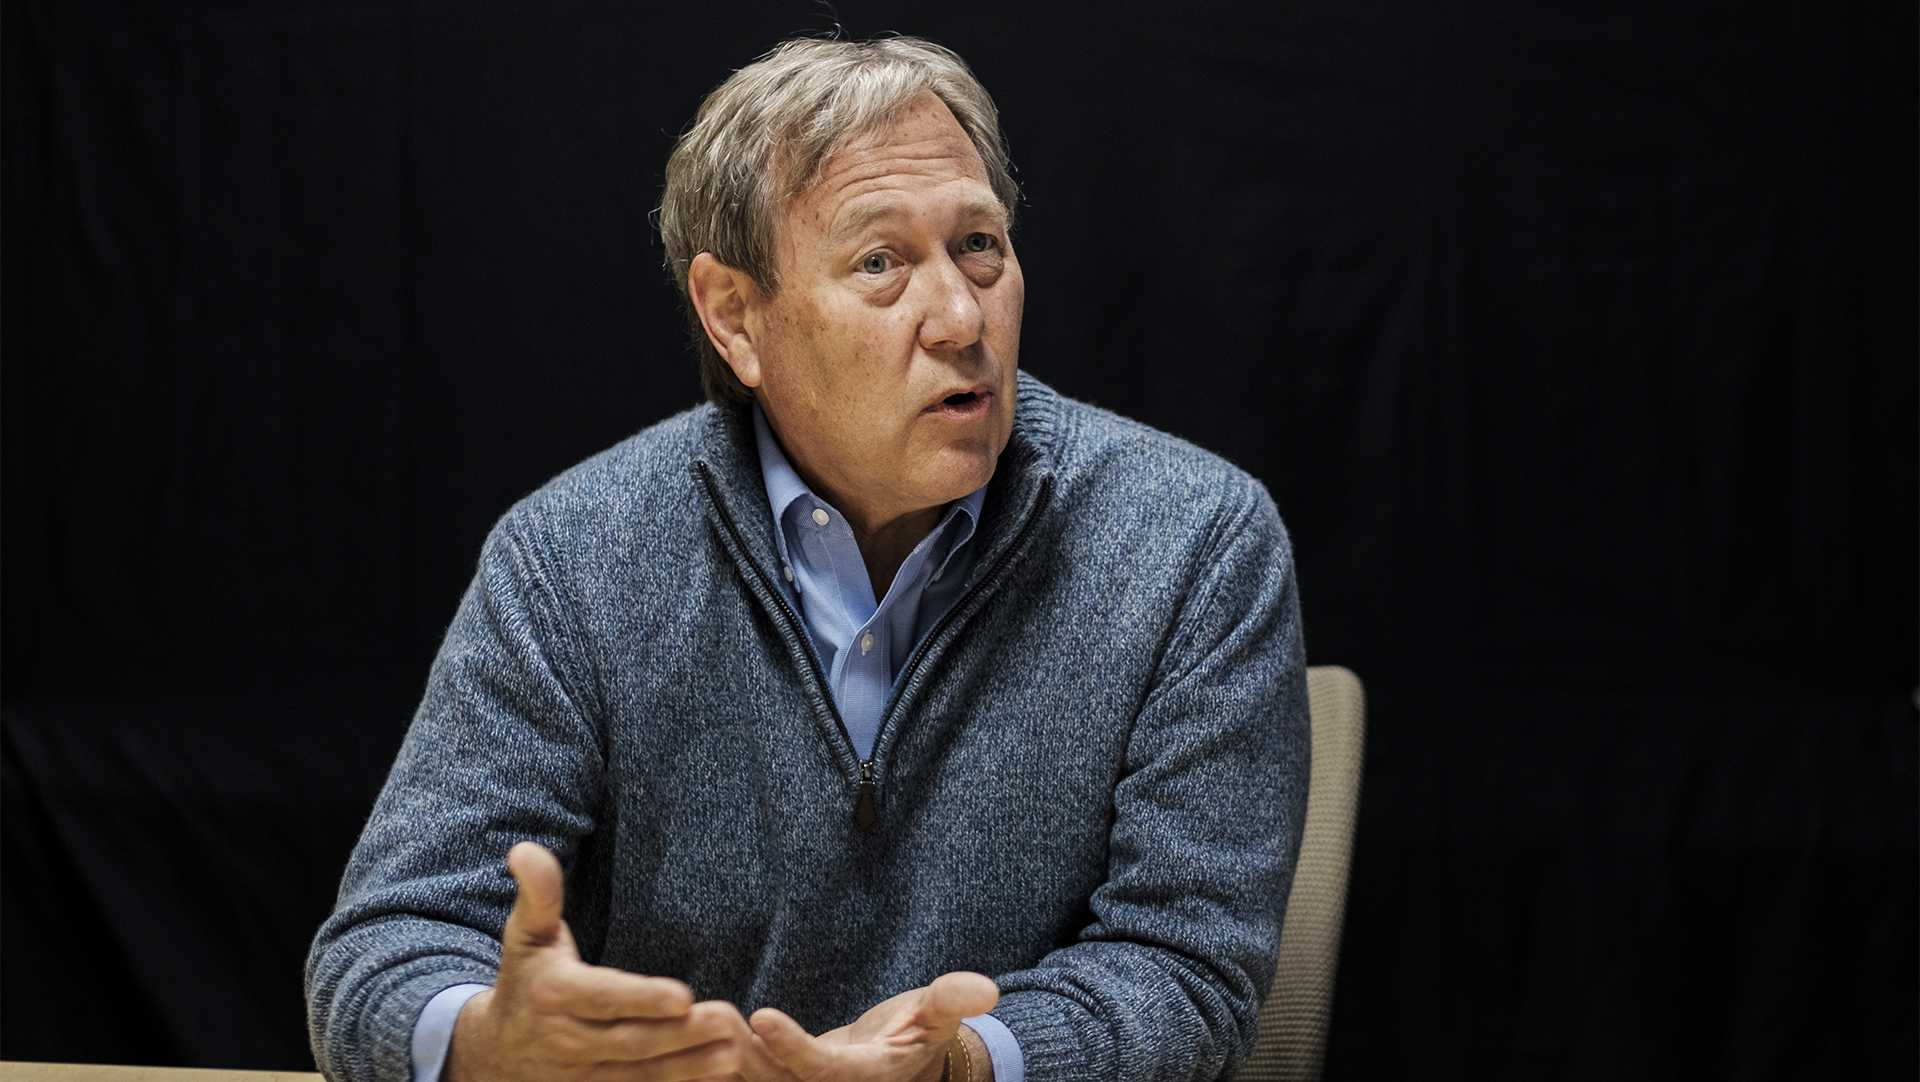 UI President Bruce Harreld answers questions during an interview at the Adler Journalism Building on Dec. 7, 2017. The interview covered topics including tuition, alcohol in the greek community, and financial aid. (Nick Rohlman/The Daily Iowan)